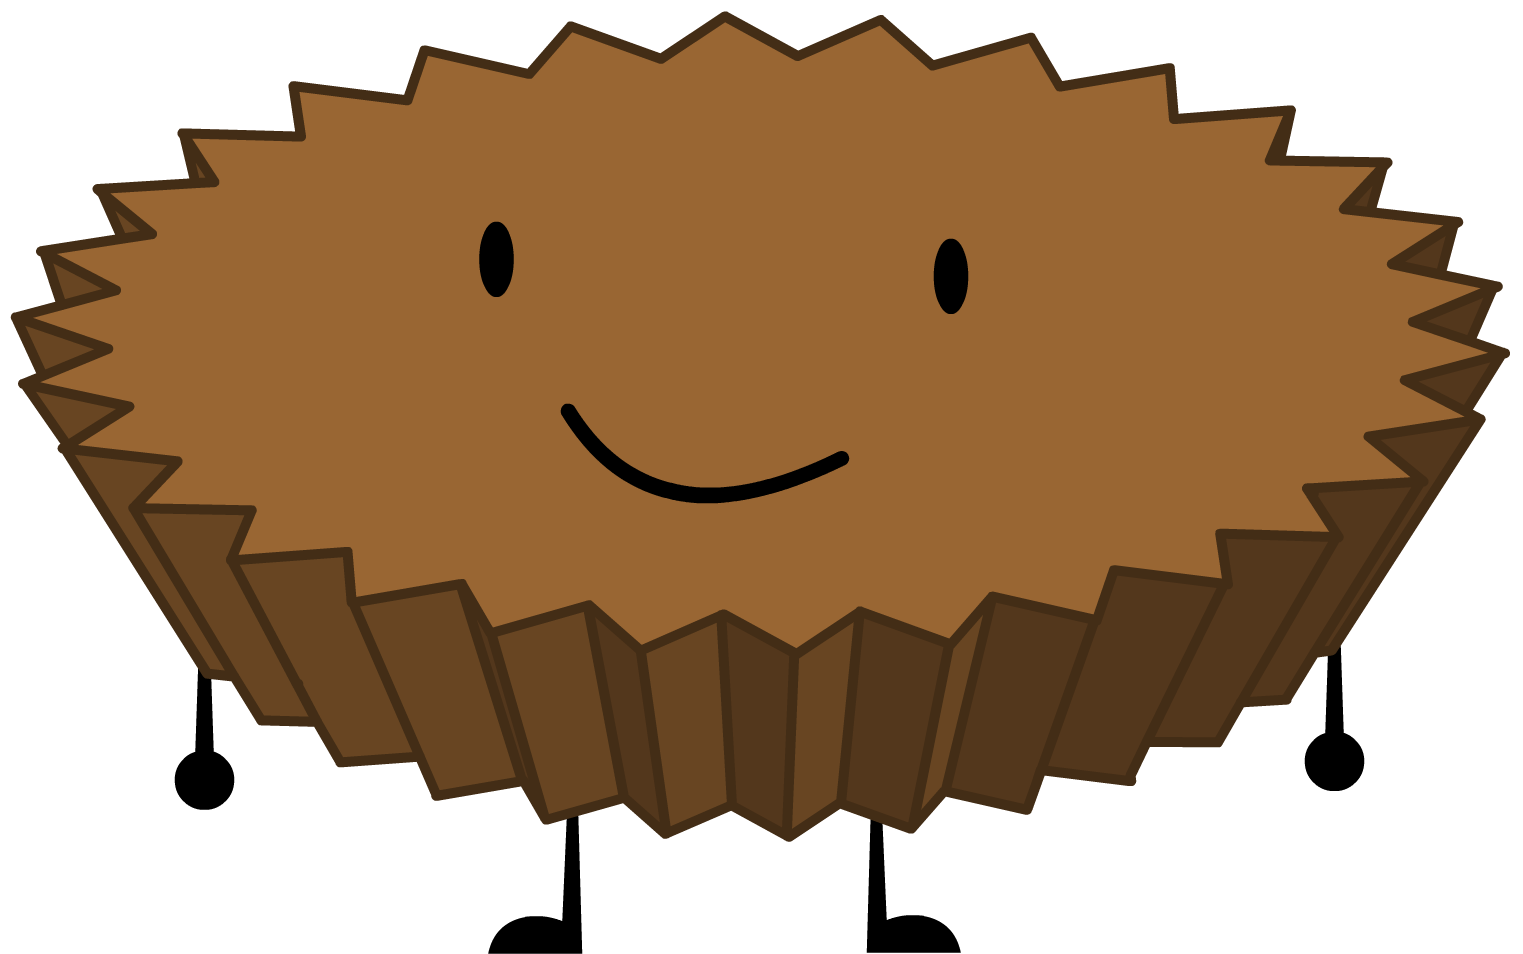 Peanut Butter Cup bfdi15